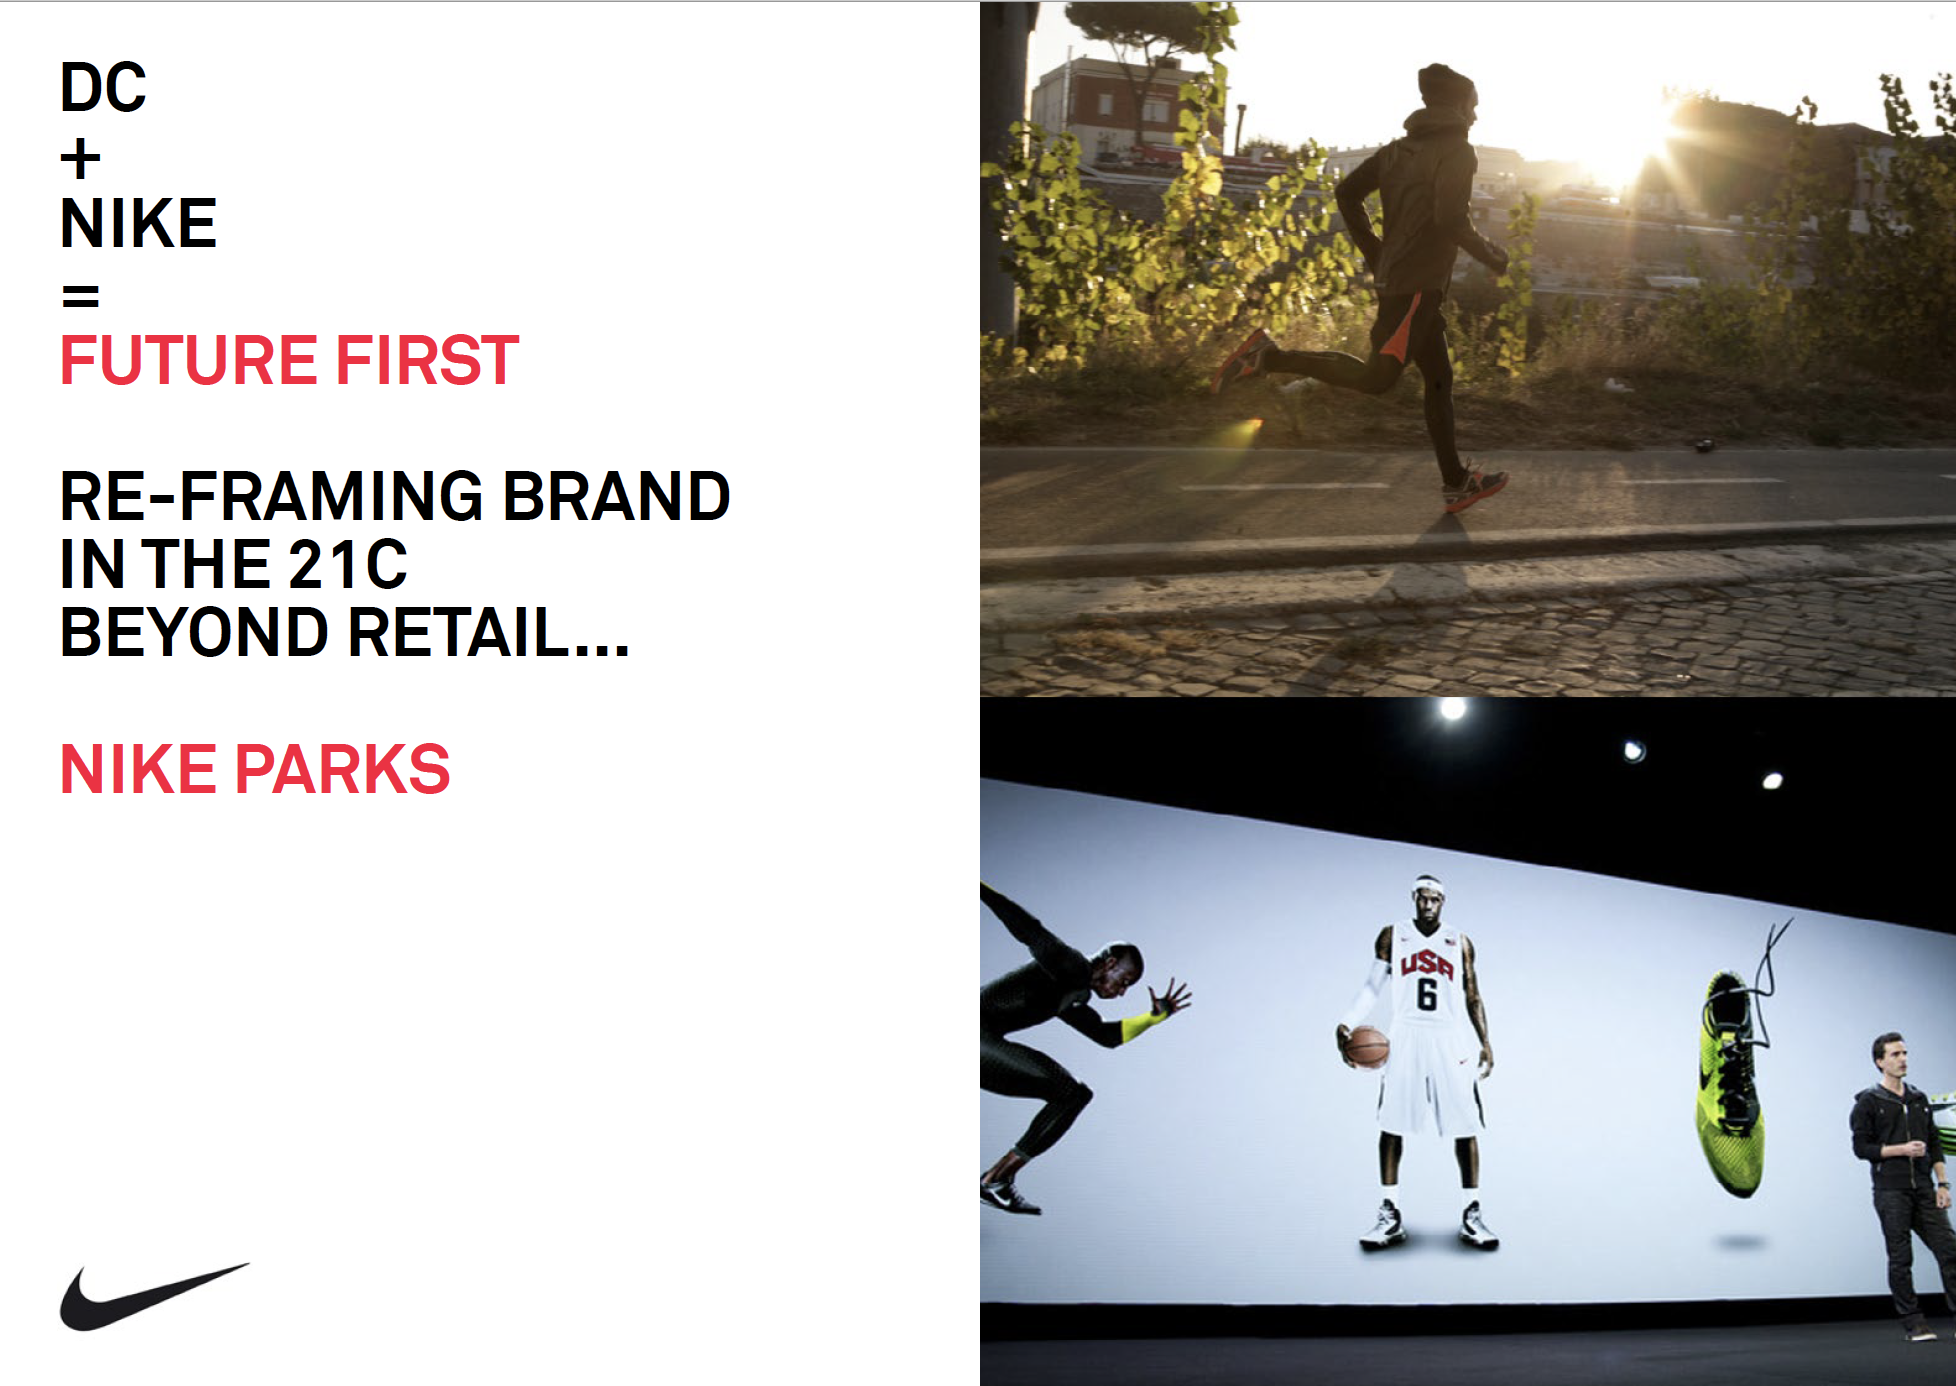 Future First: Nike first – we get how people live, from their daily tasks to their cherished rituals, we create extraordinary places that make life better, healthier and more fun. Stimulate health and well-being through partnership design. Reframing the notion of city living in the 21st century, going beyond retail.